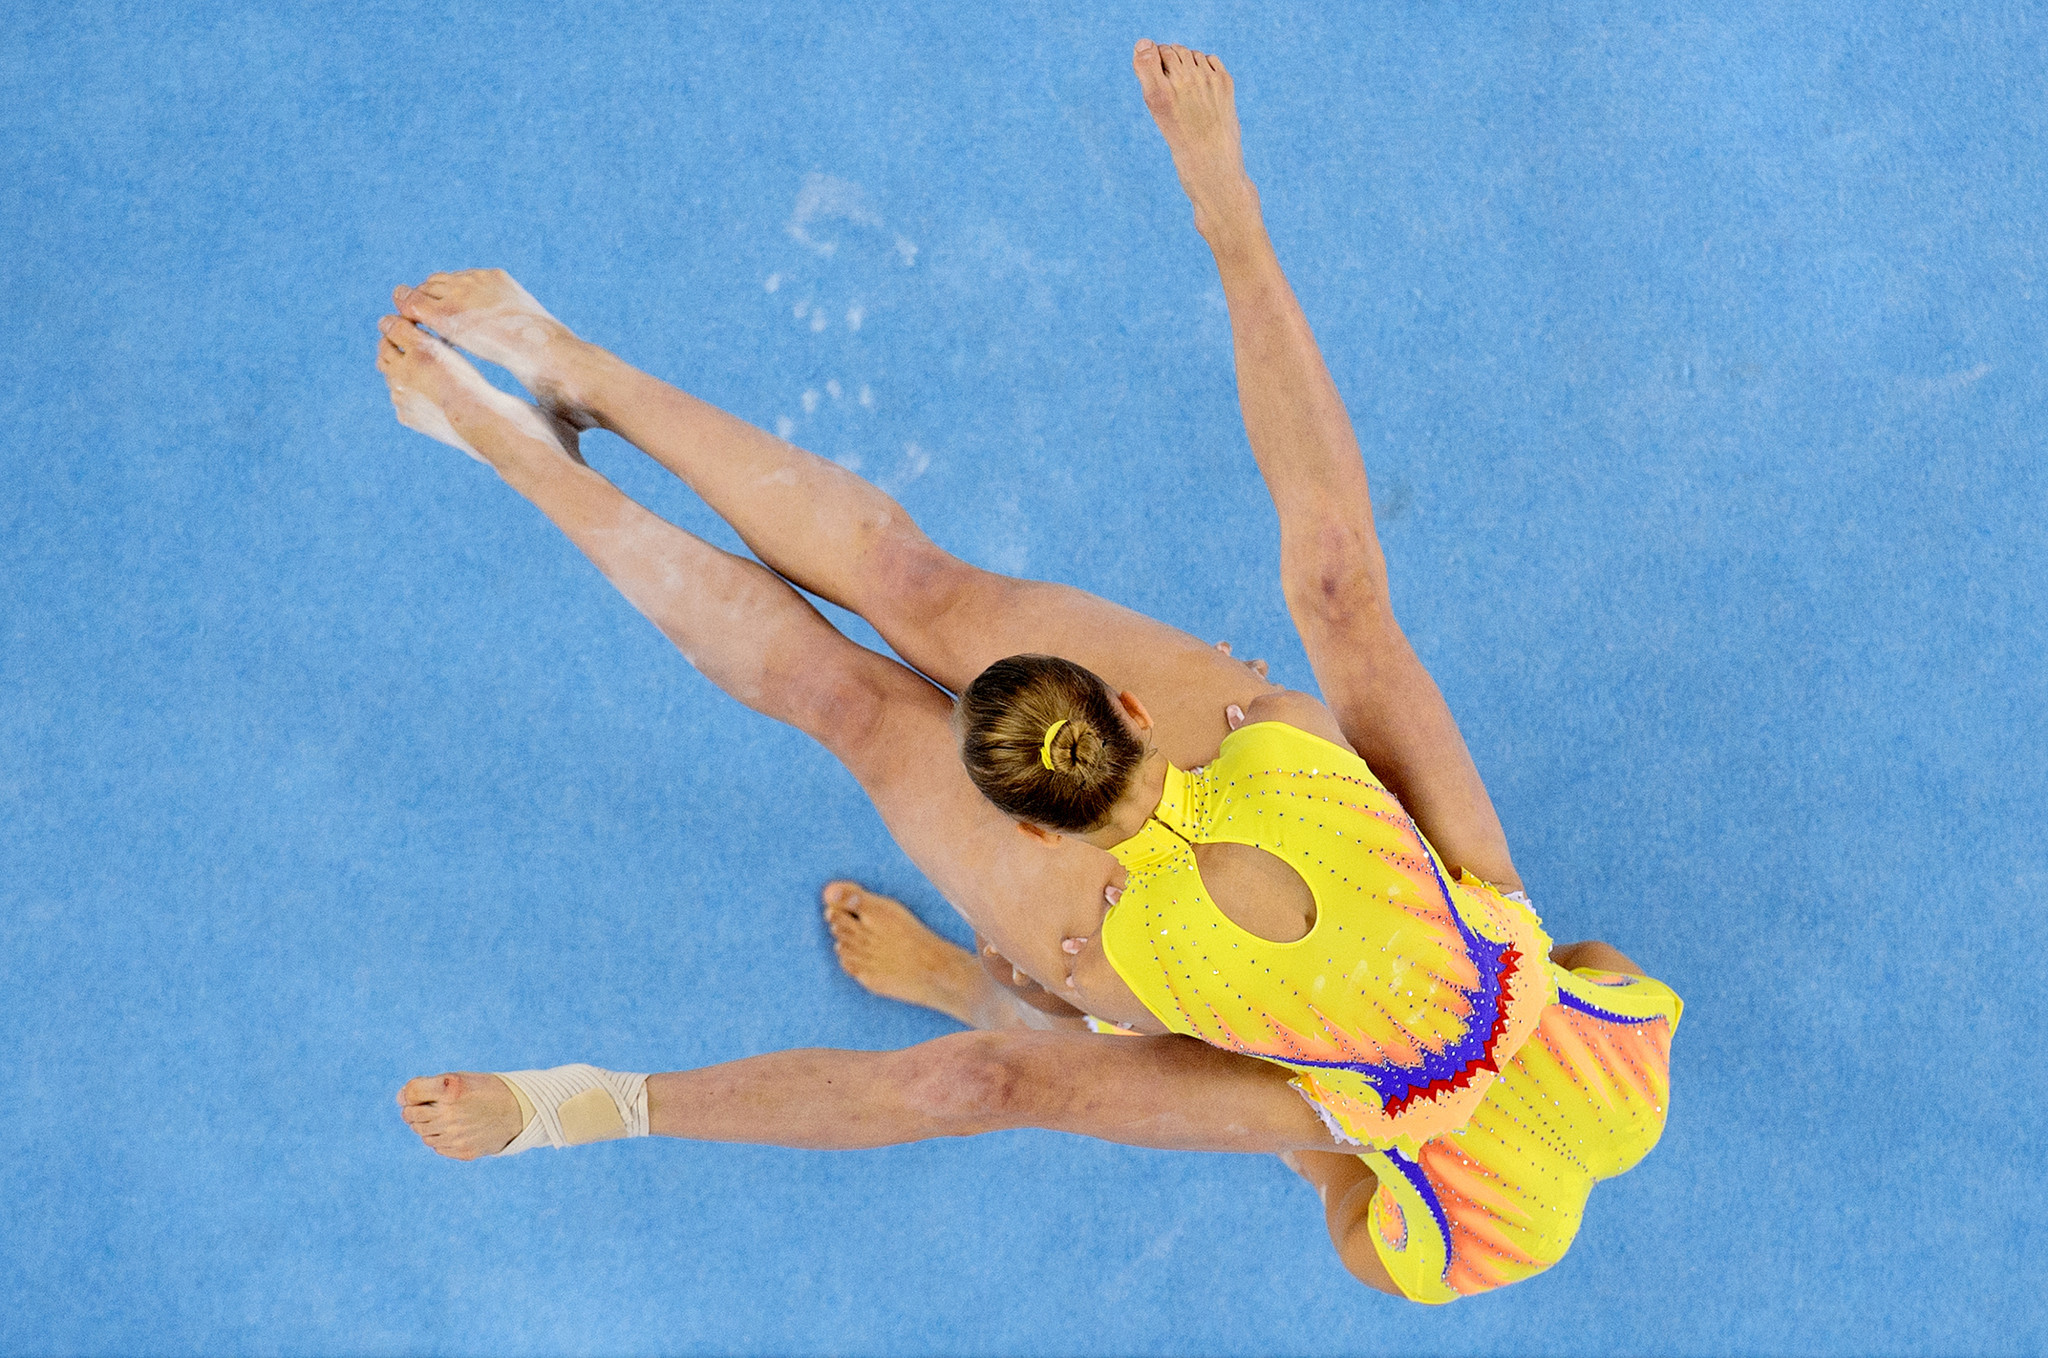 RGF teams take first two golds at Acrobatic Gymnastics World Championships in Geneva